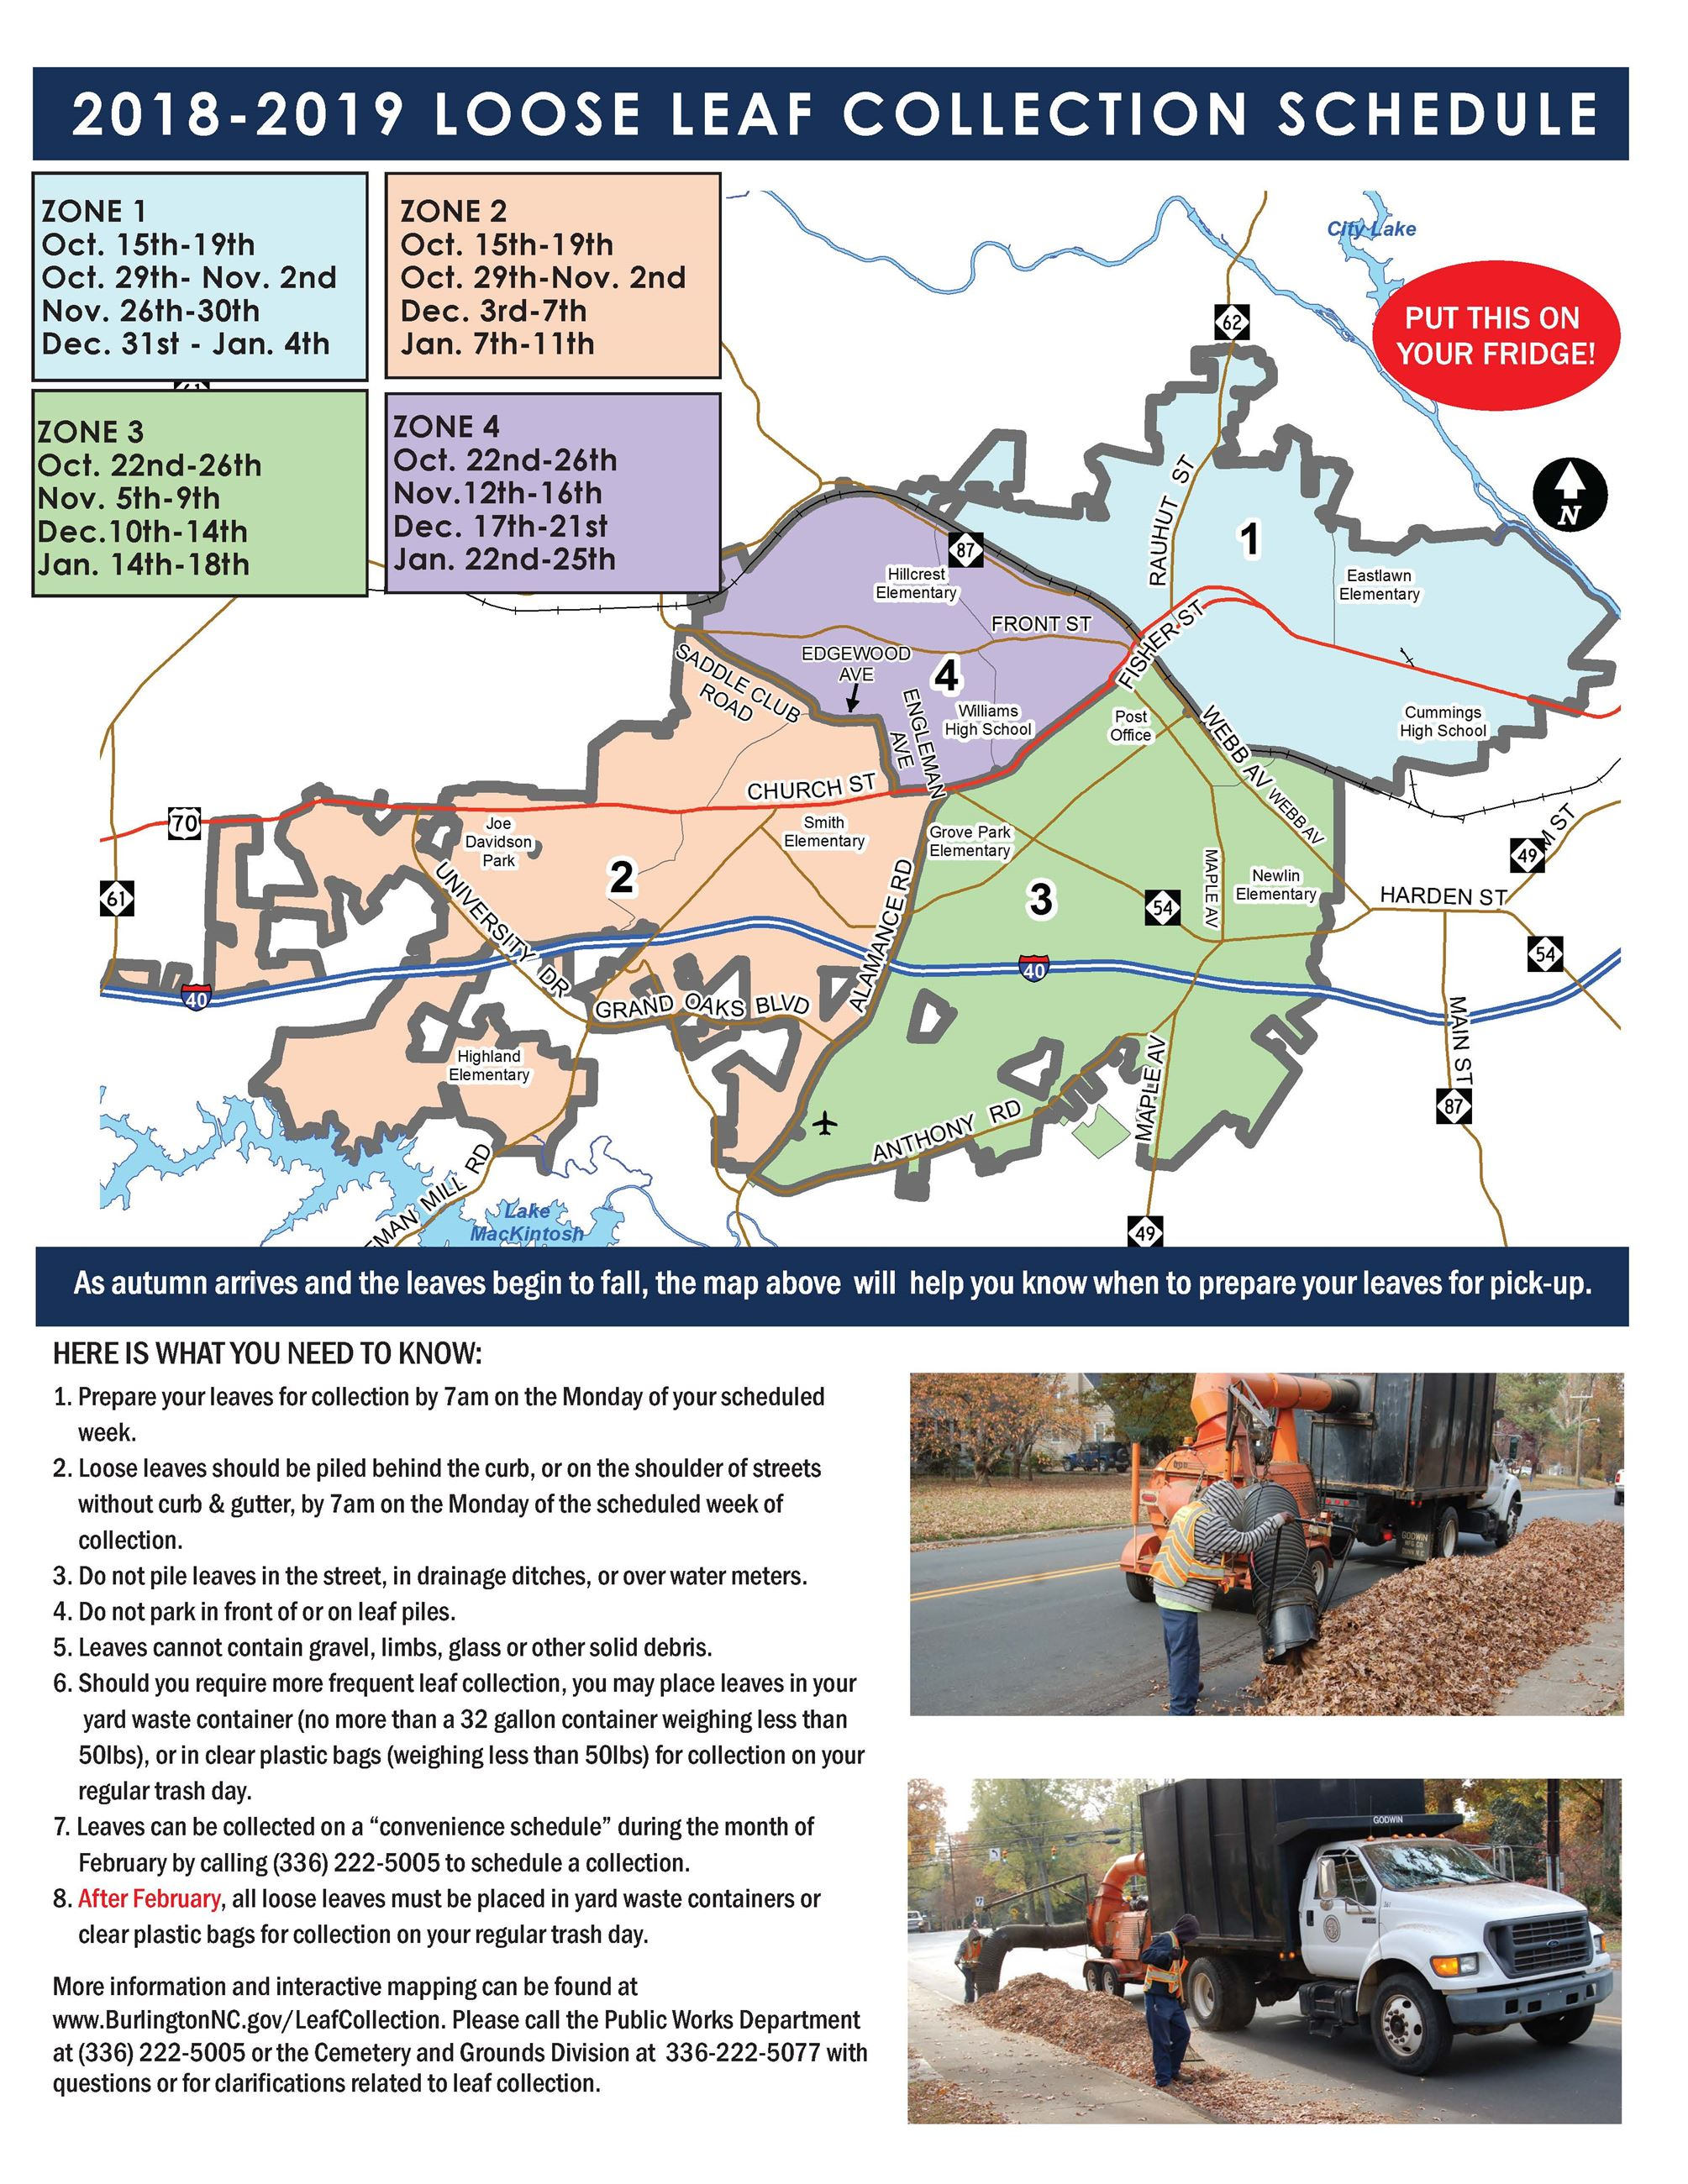 City of Burlington Leaf Collection Schedule 2018